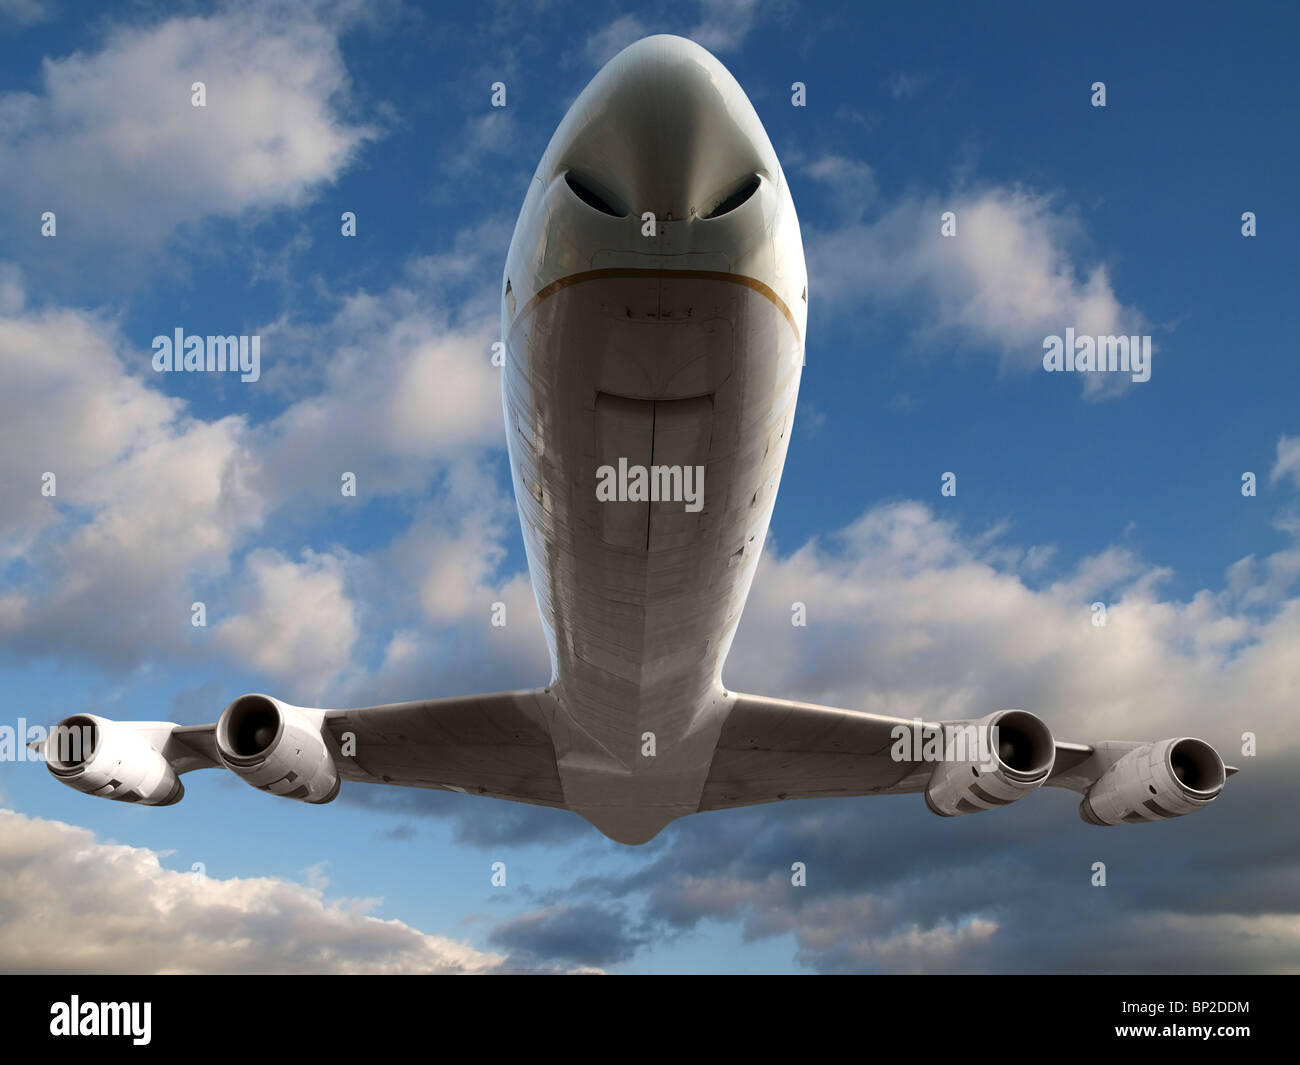 Low flying commercial aviation jet aircraft with soft clouds. - Stock Image